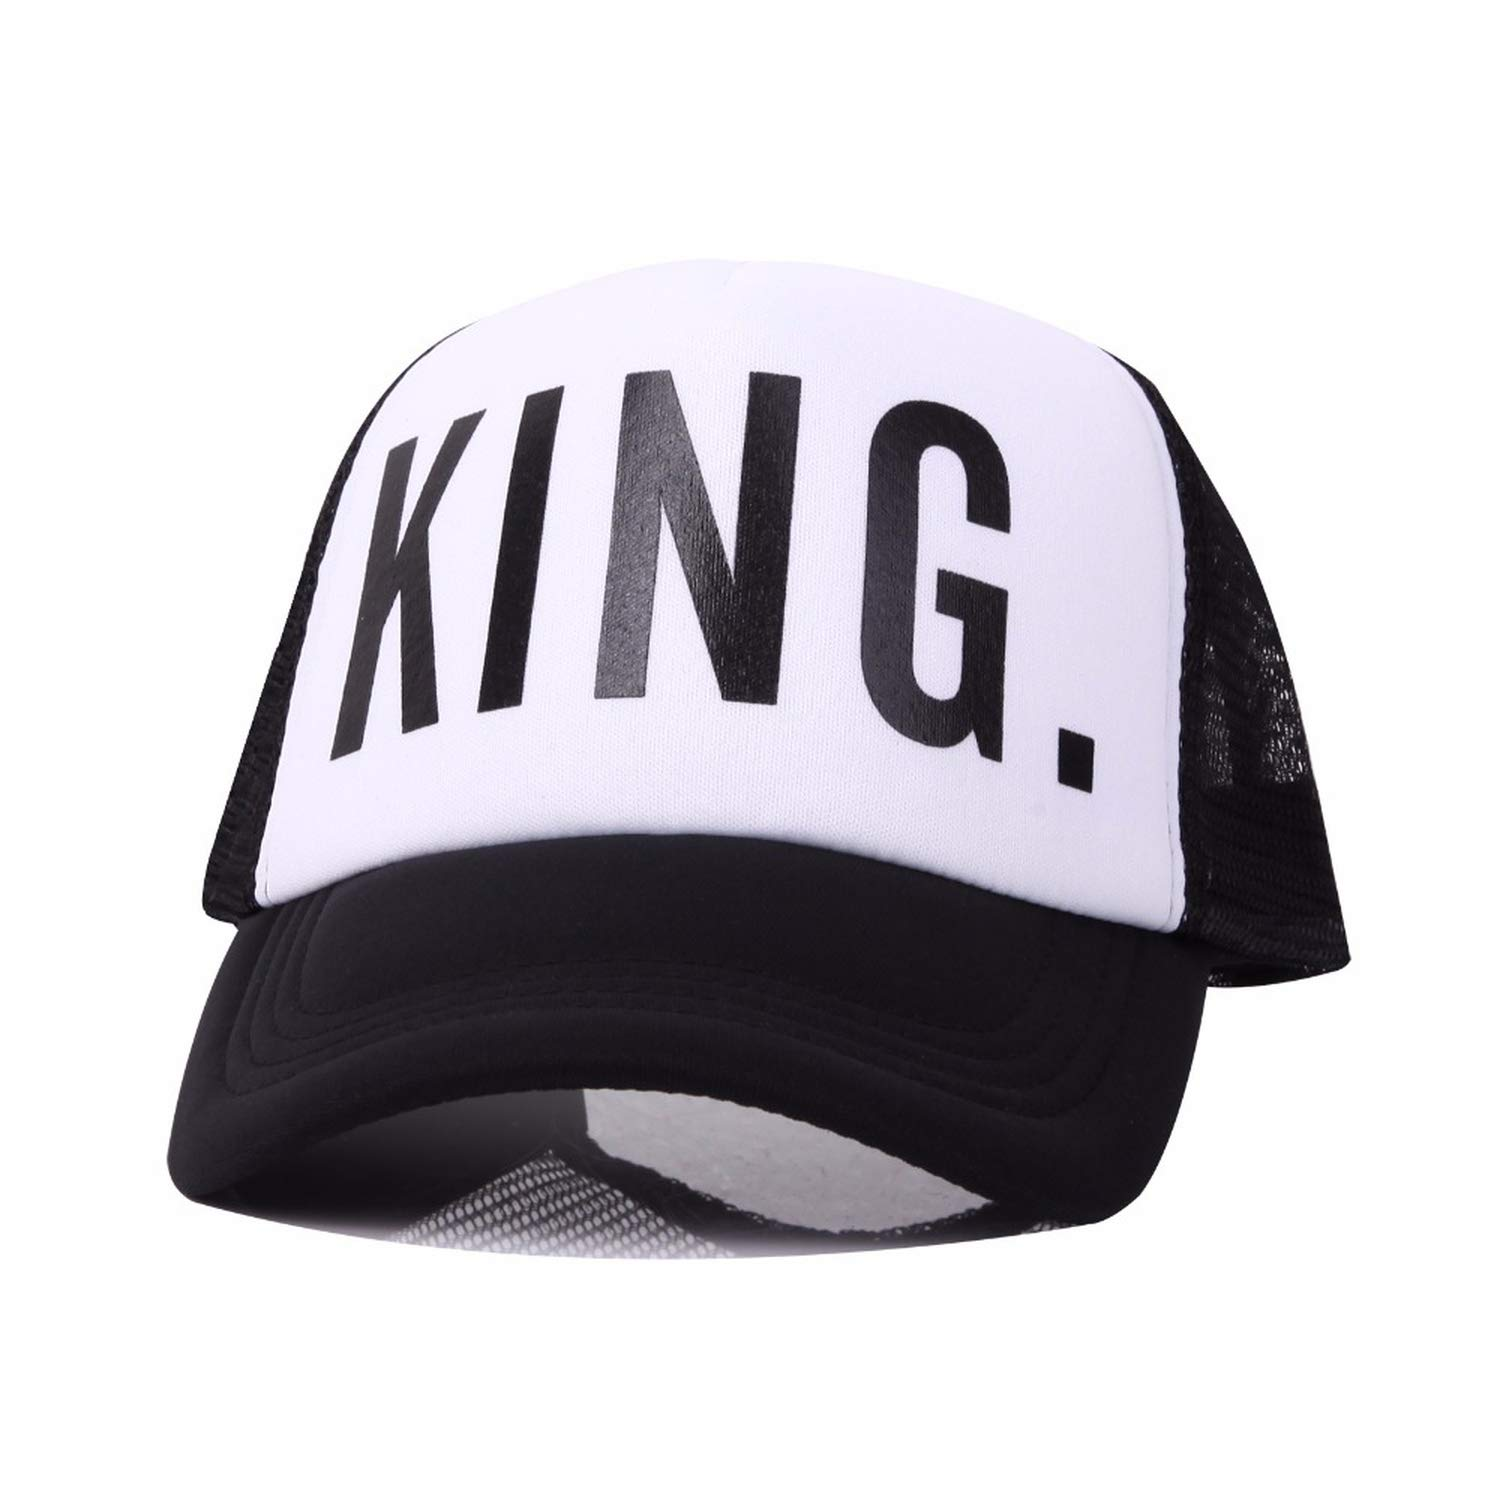 New King Queen Print Trucker Caps Men Women Polyester Mesh Summer Flat Visor Hat White Black Couple Gifts at Amazon Womens Clothing store: